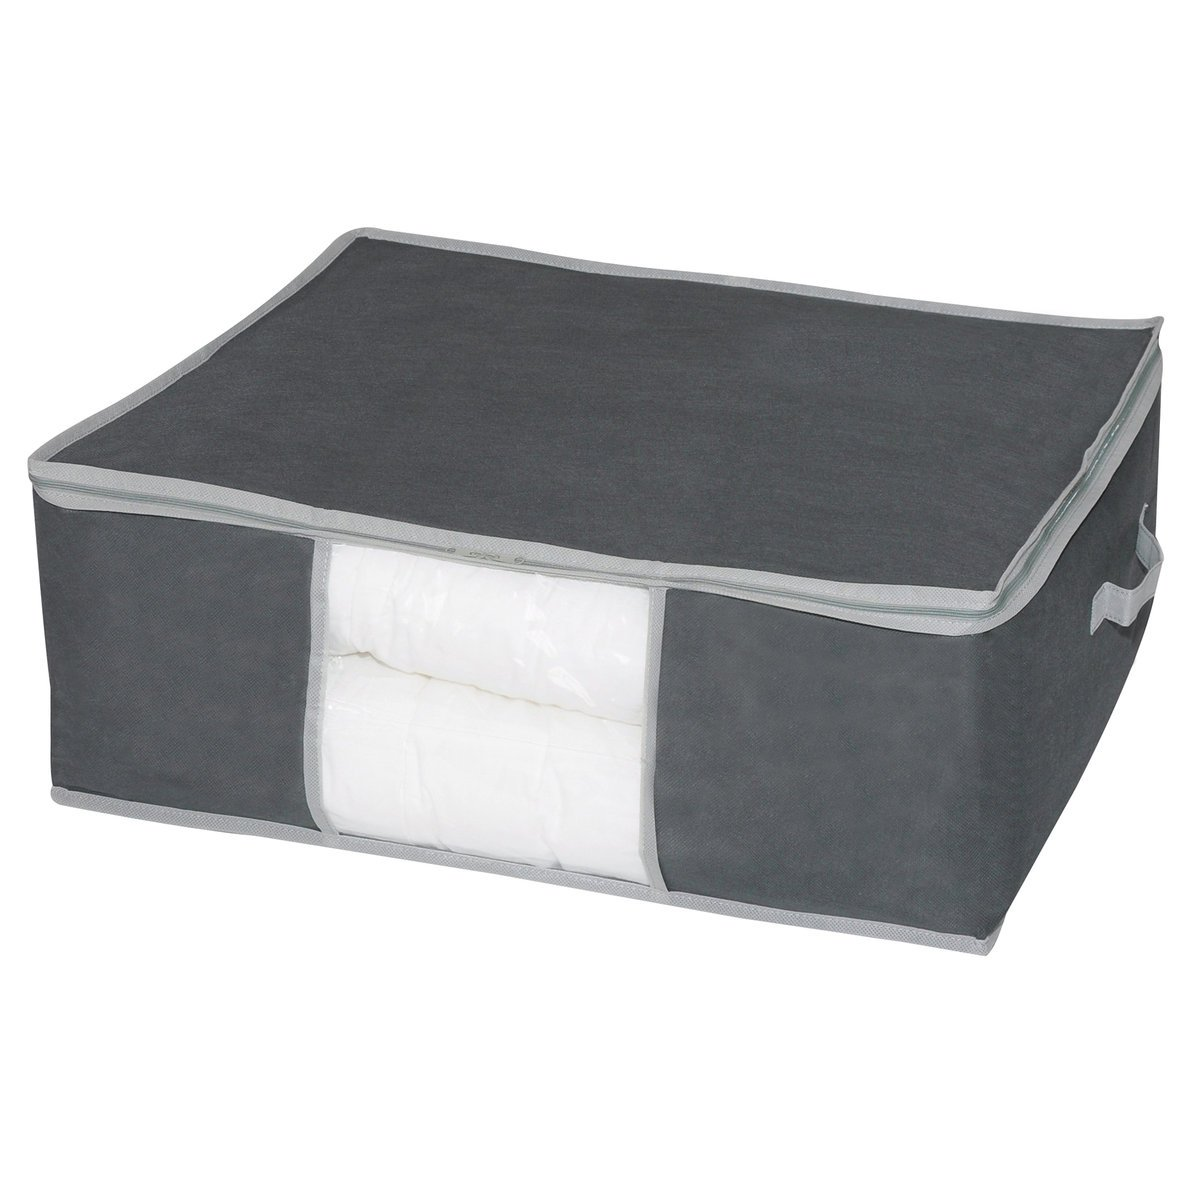 Specially For Duvets And Blankets Grey Size One Size La Redoute Interieurs Non-Woven Storage Bag